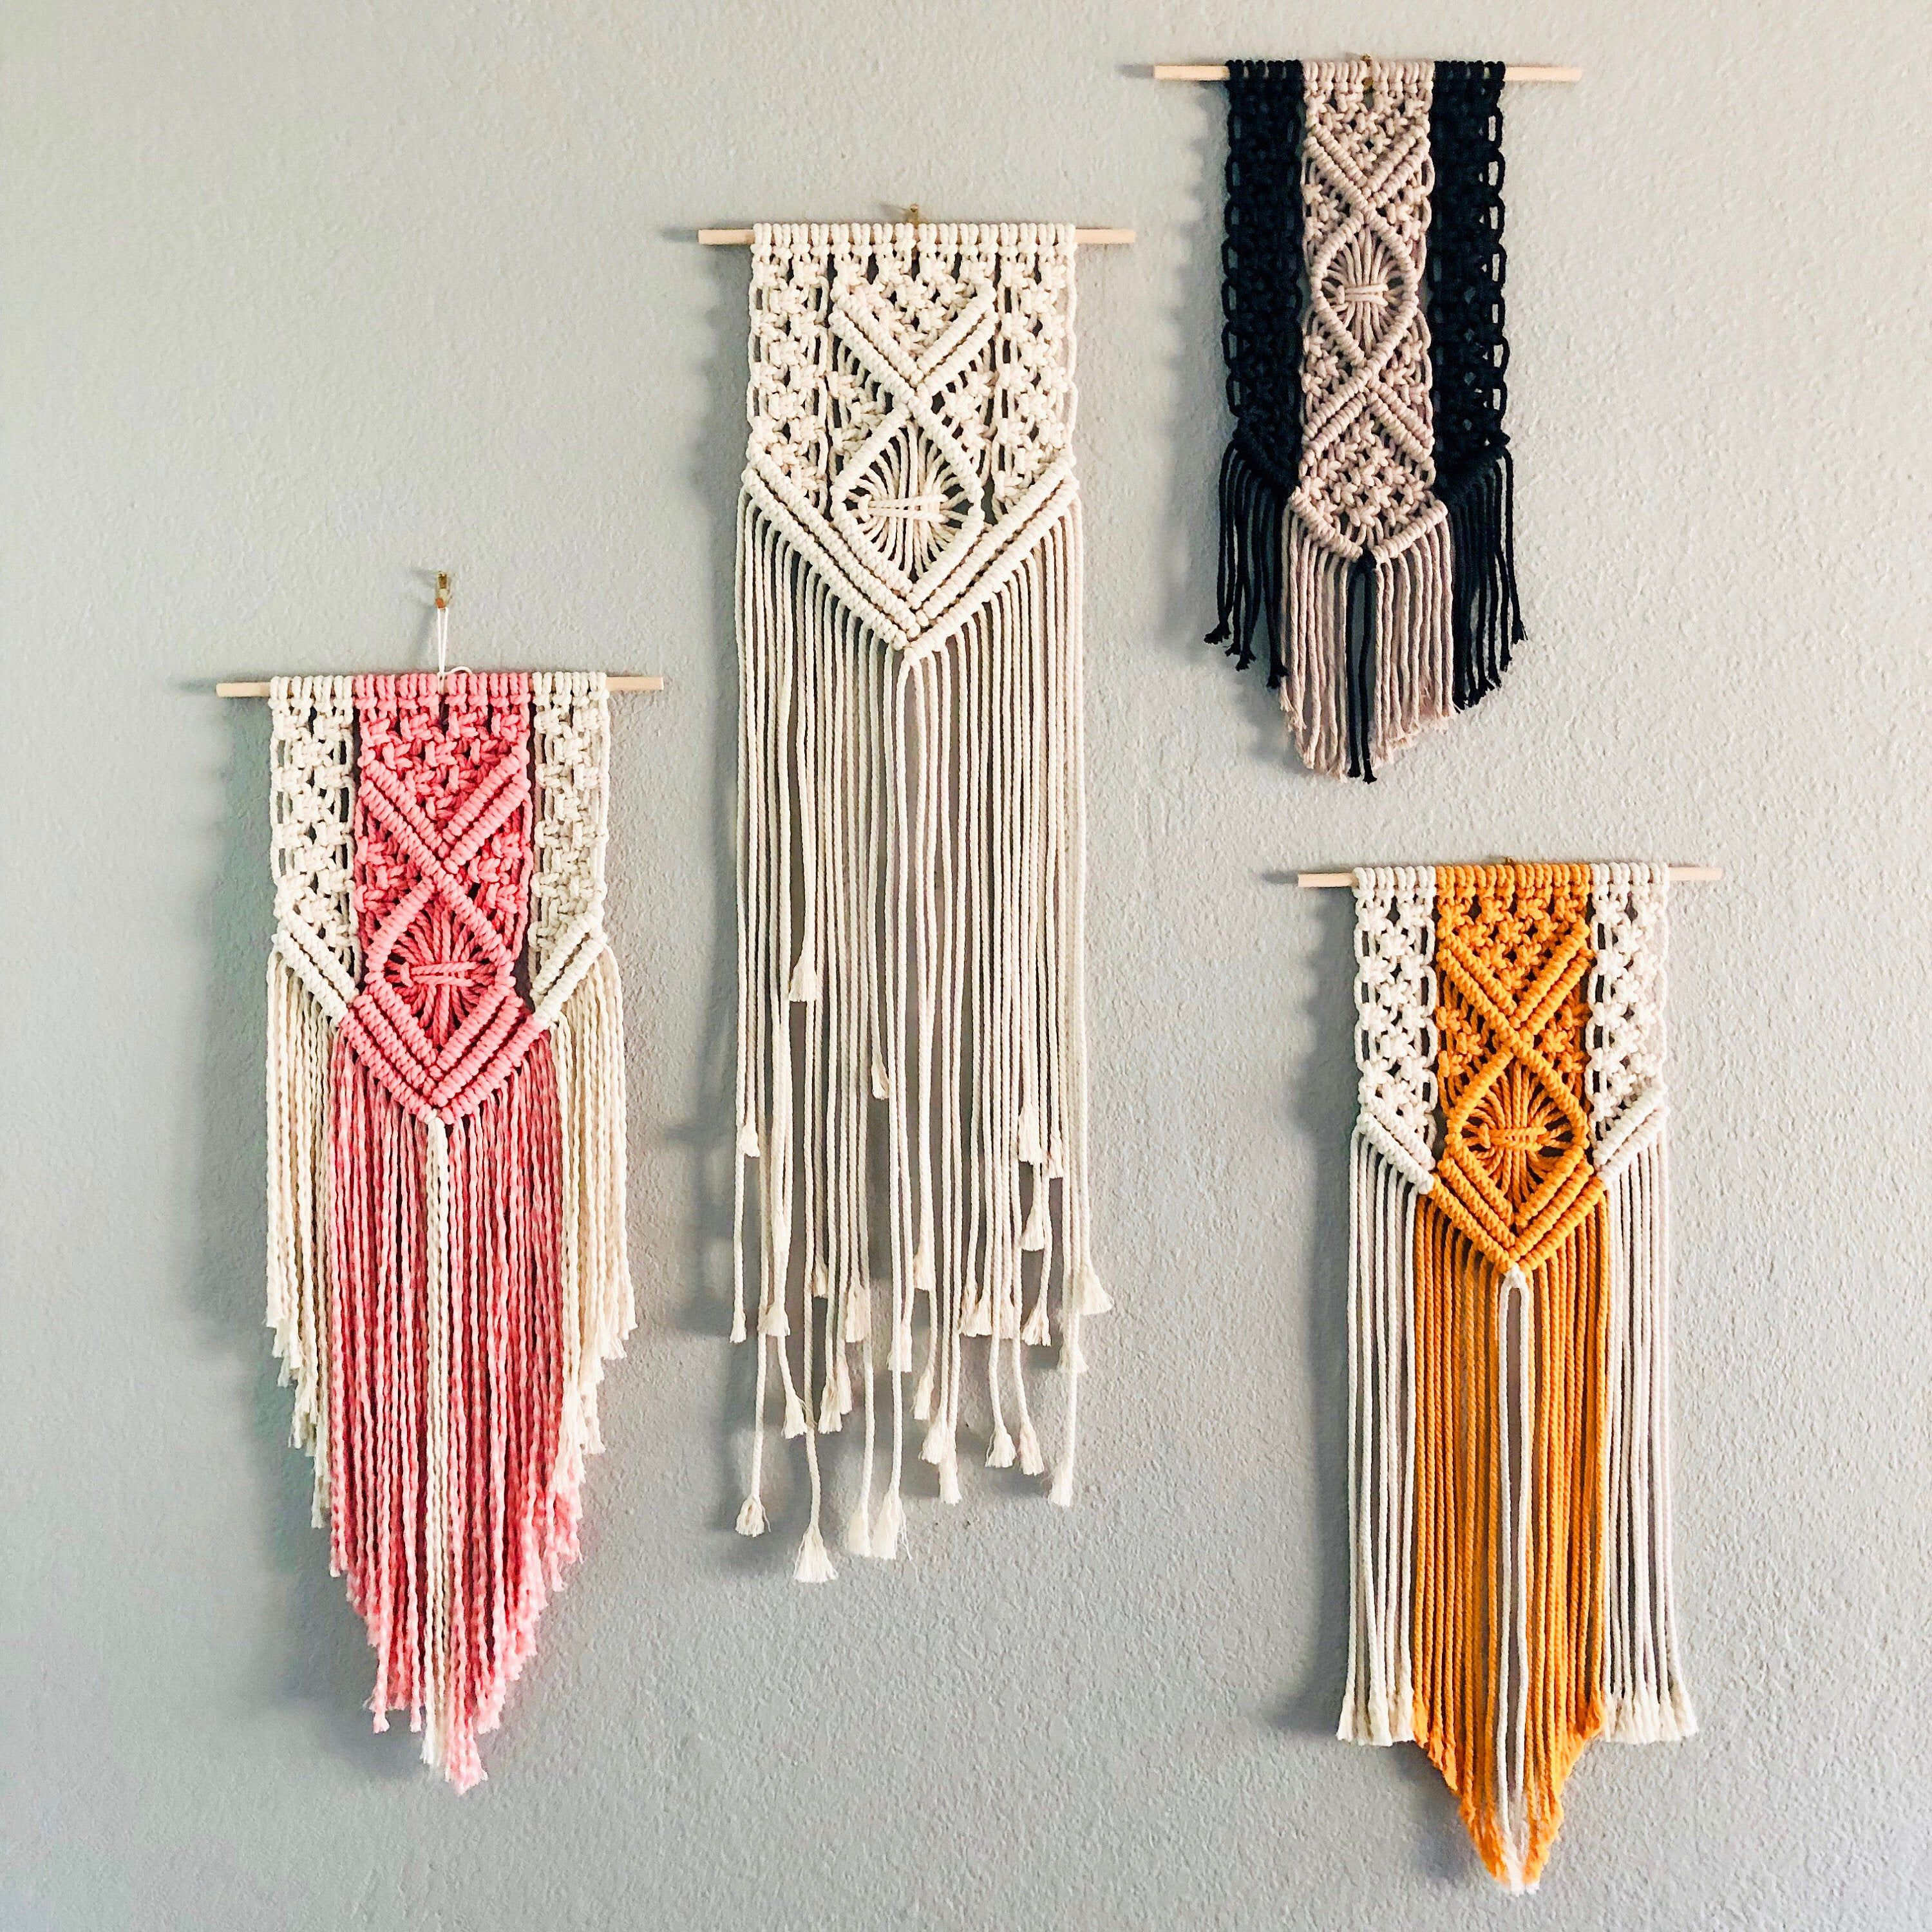 X S And O S Two Tone Macrame Wall Hanging Custom Etsy Macrame Patterns Macrame Wall Hanging Macrame Wall Hanger